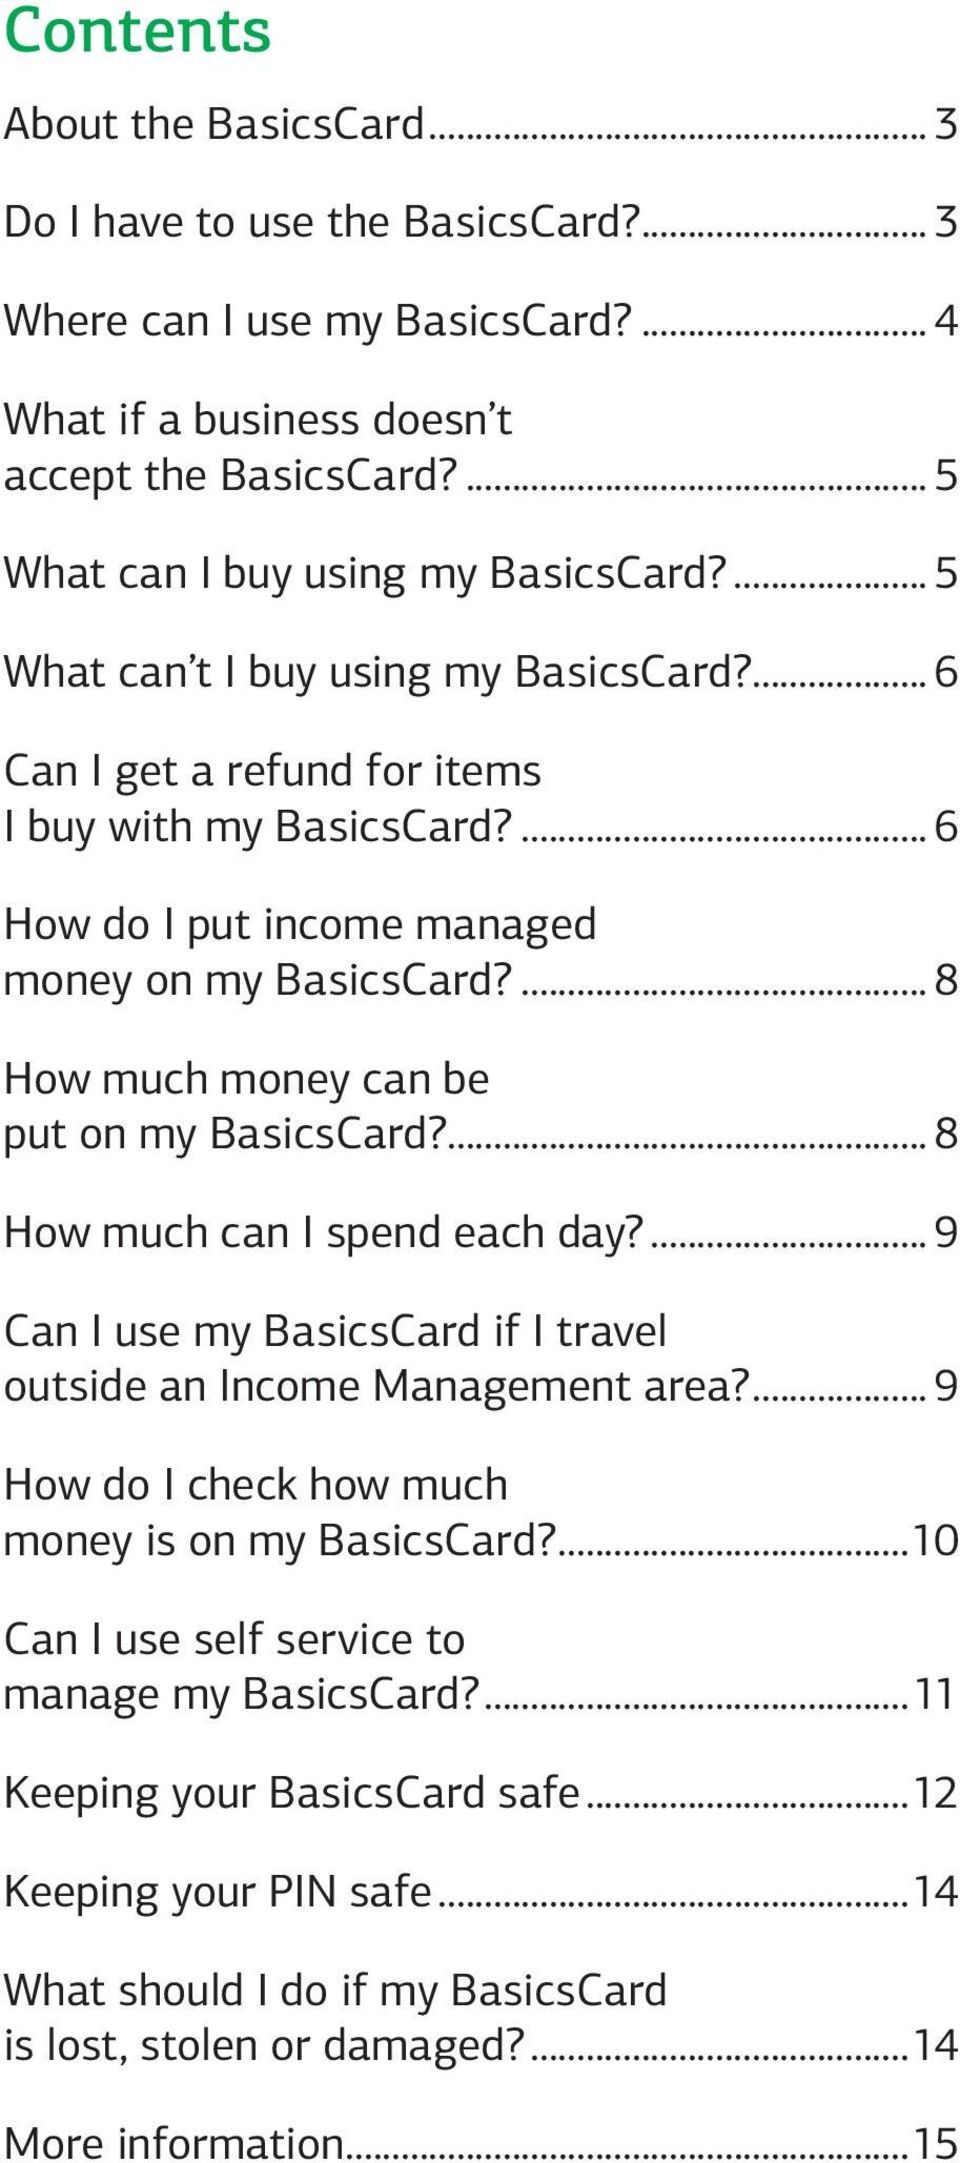 6 How do I put income managed money on my BasicsCard? 8 How much money can be put on my BasicsCard? 8 How much can I spend each day?